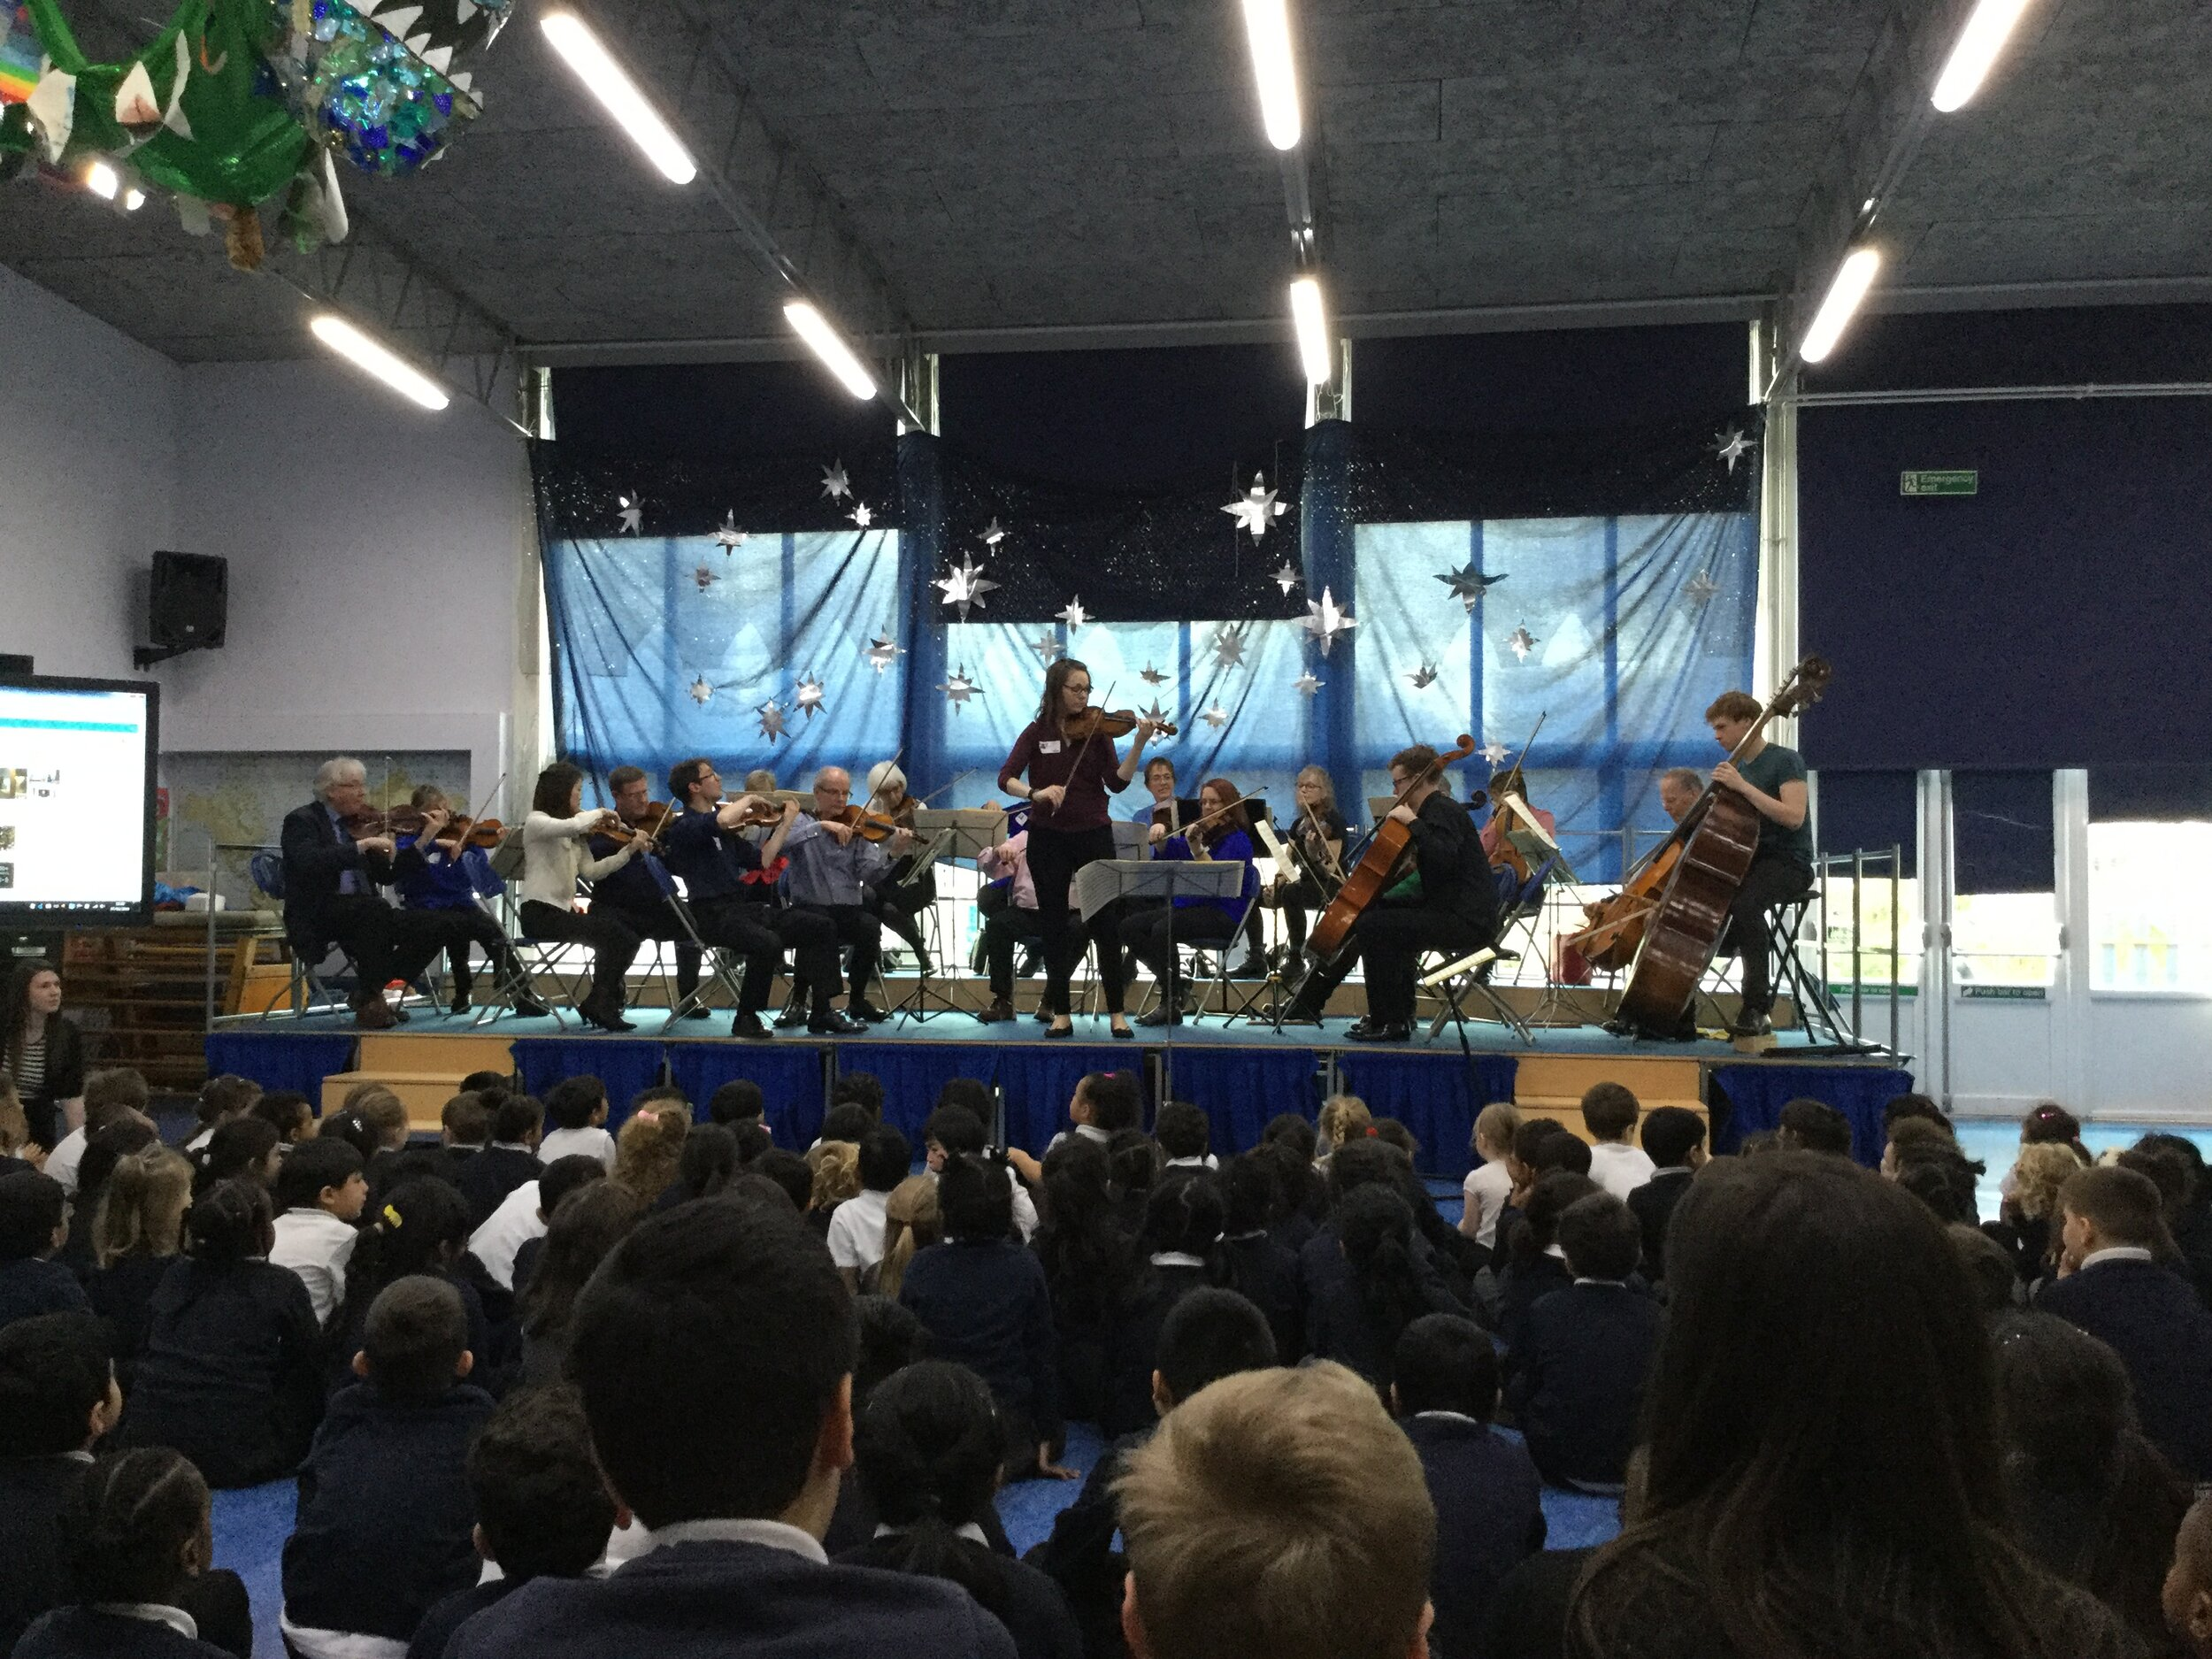 School concert at Southmead Primary School